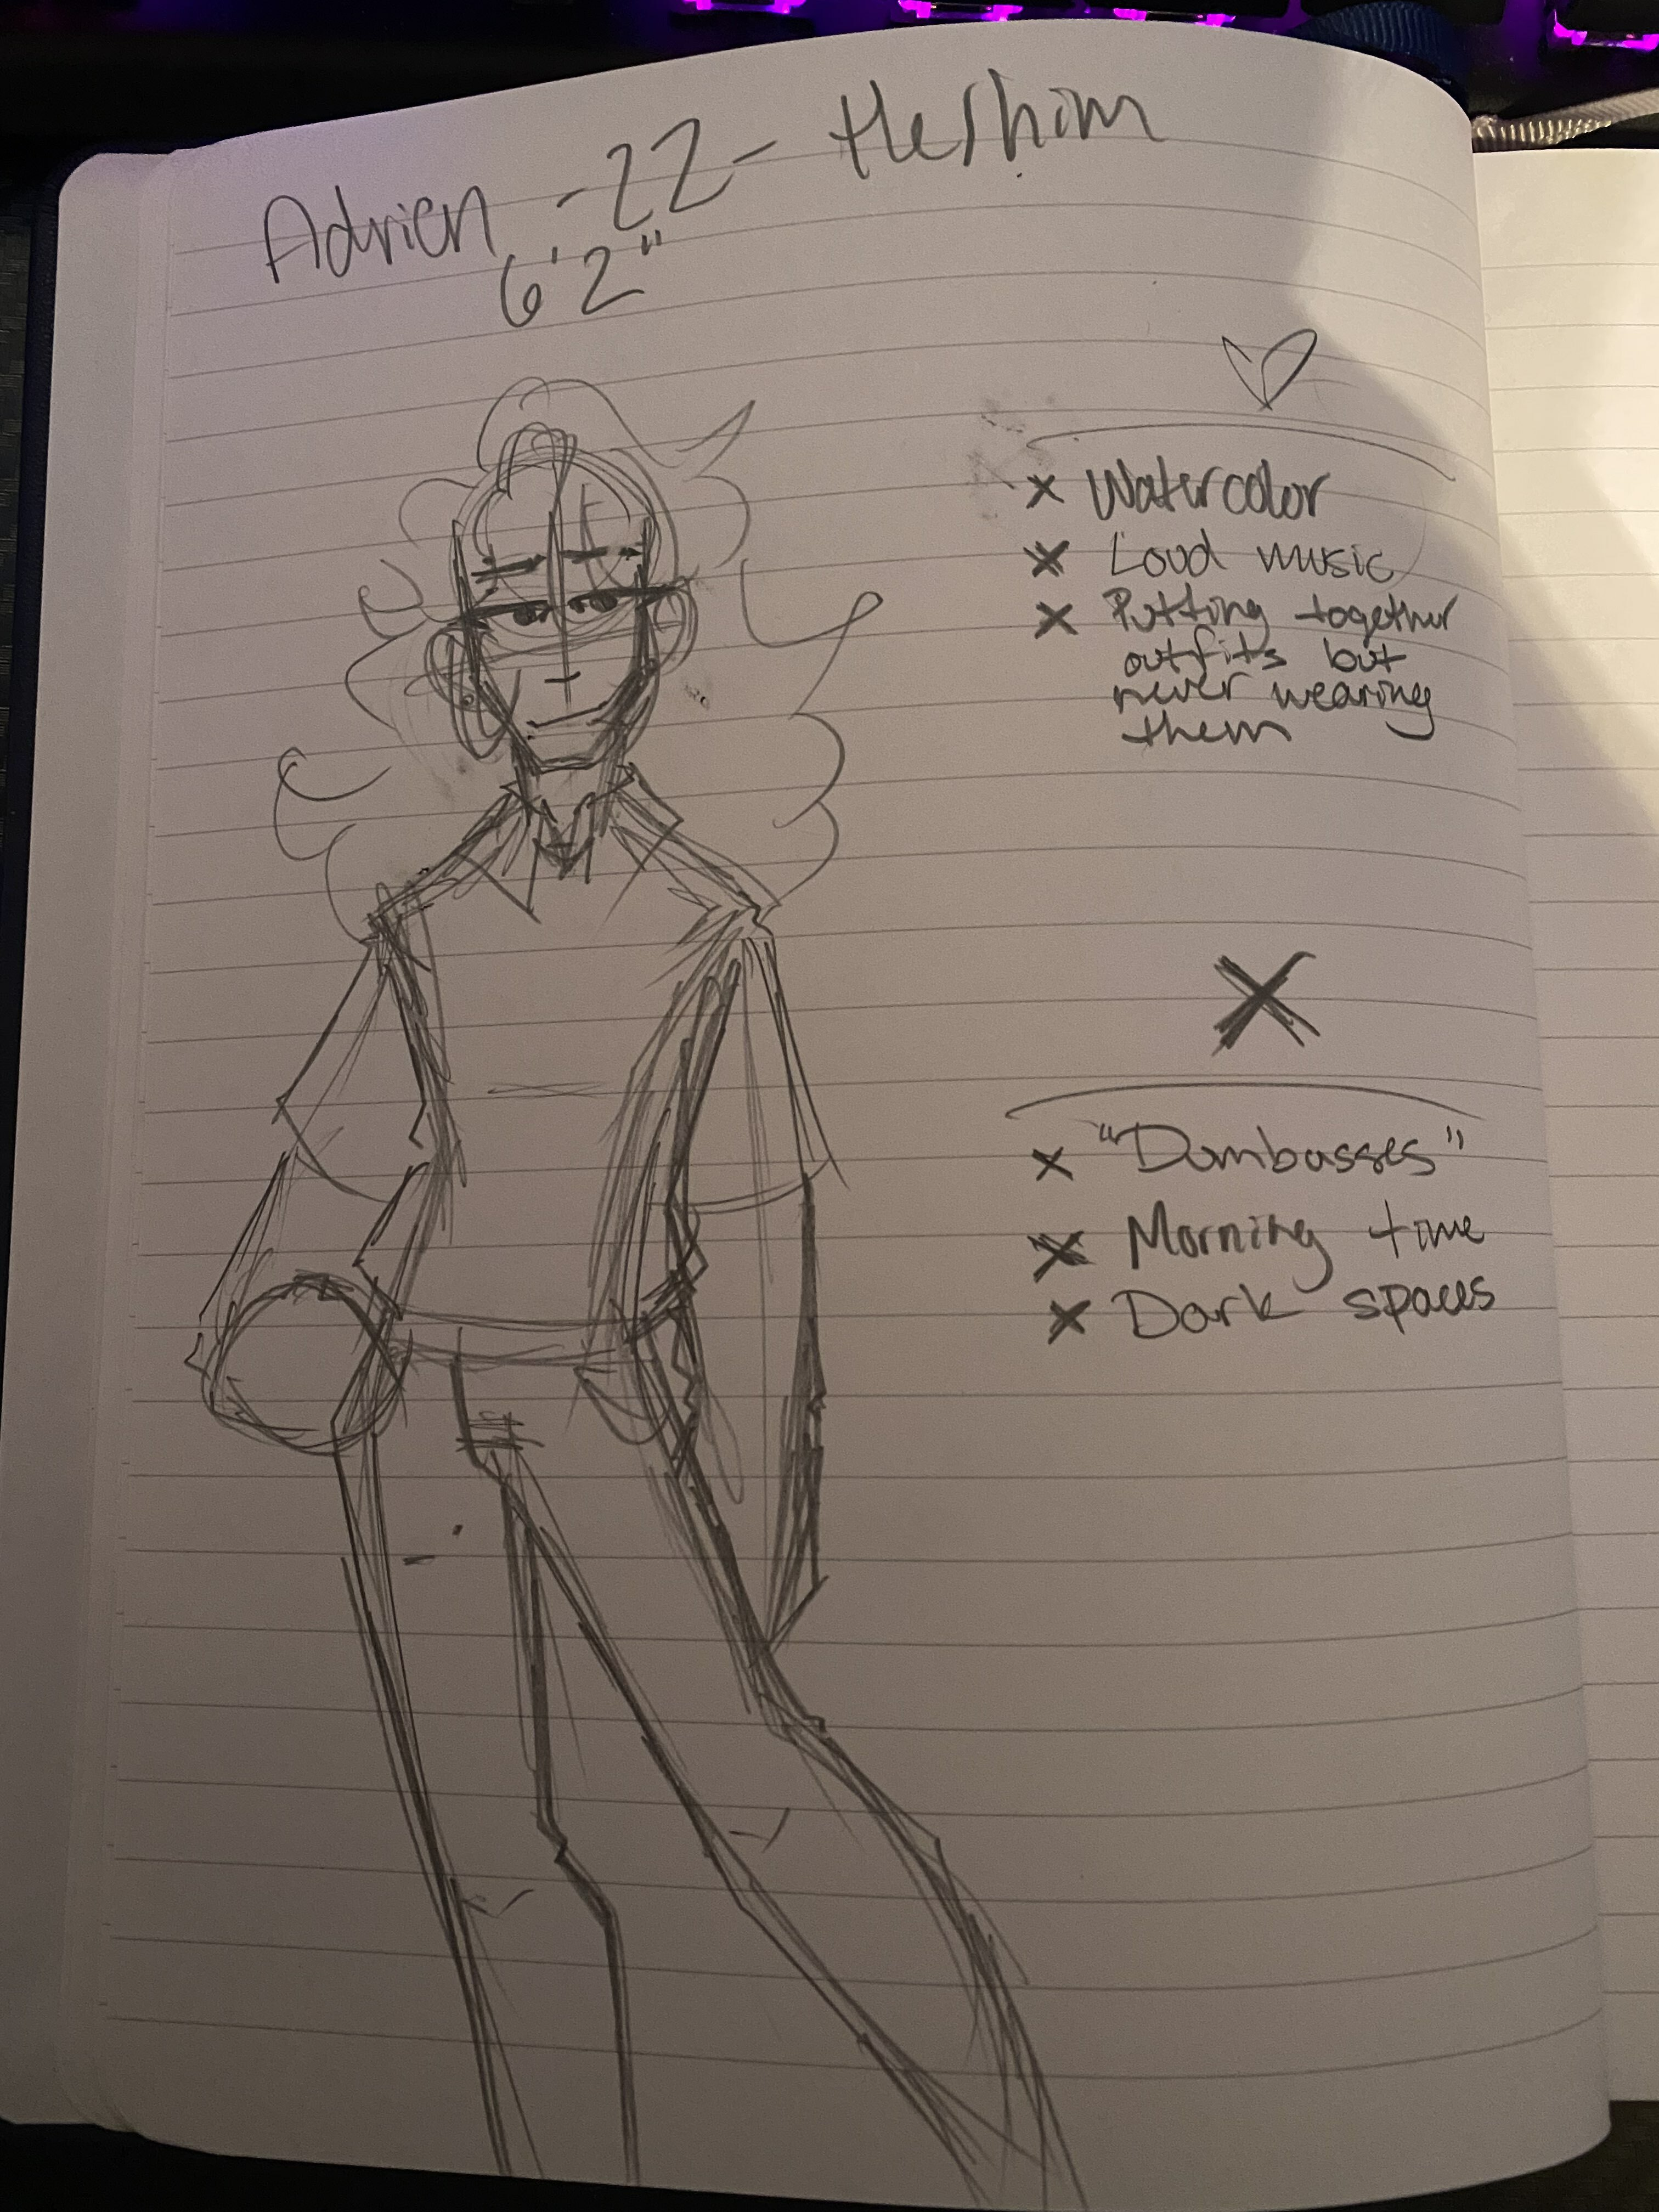 another character idea B)